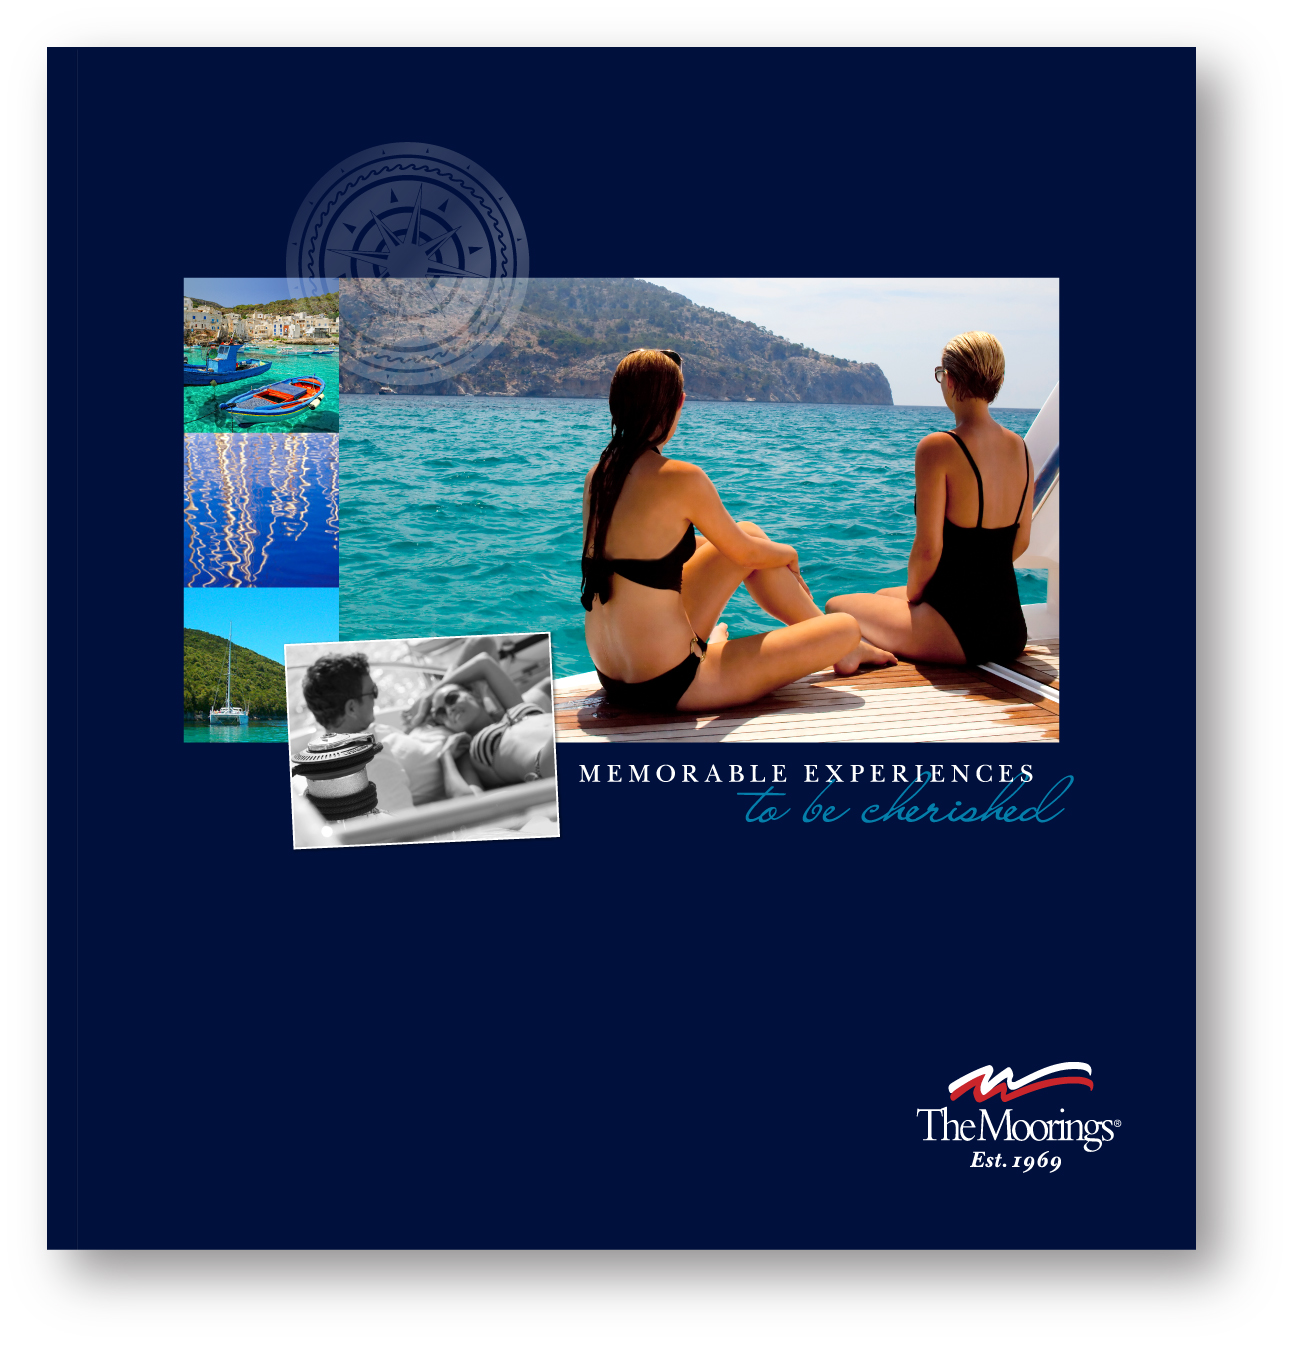 Mooring's new brochure